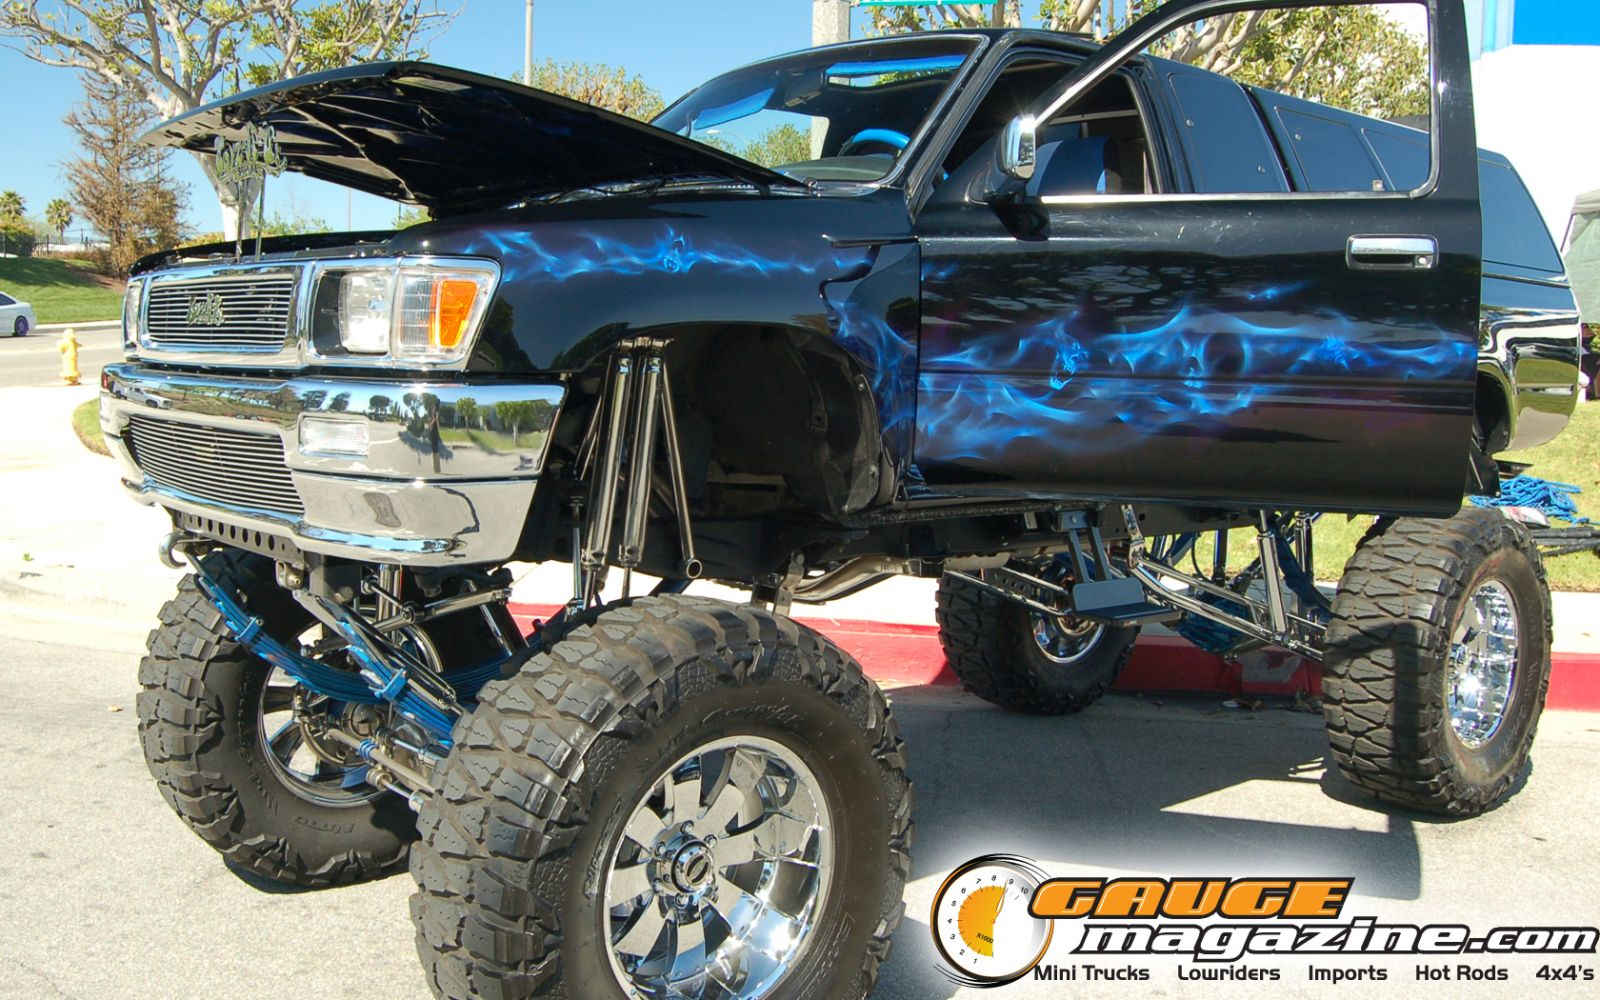 Gauge Magazine Toyota 4x4 Truck Wallpaper from Relaxin in So Cal 1600x1000